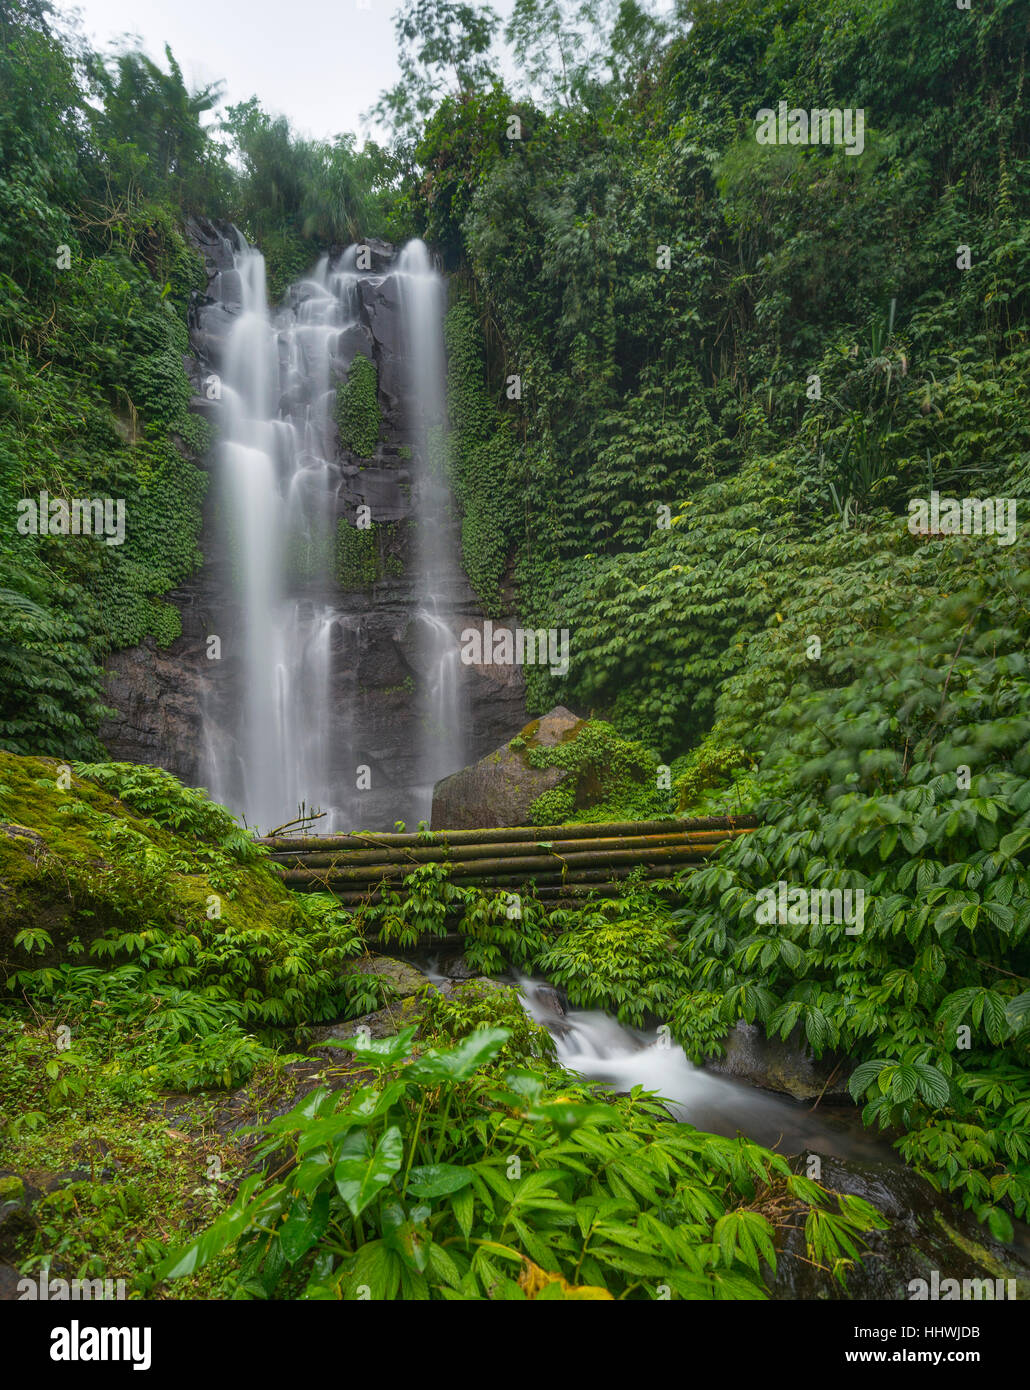 Cascade de Munduk dans jungle, Munduk, Bali, Indonésie Photo Stock